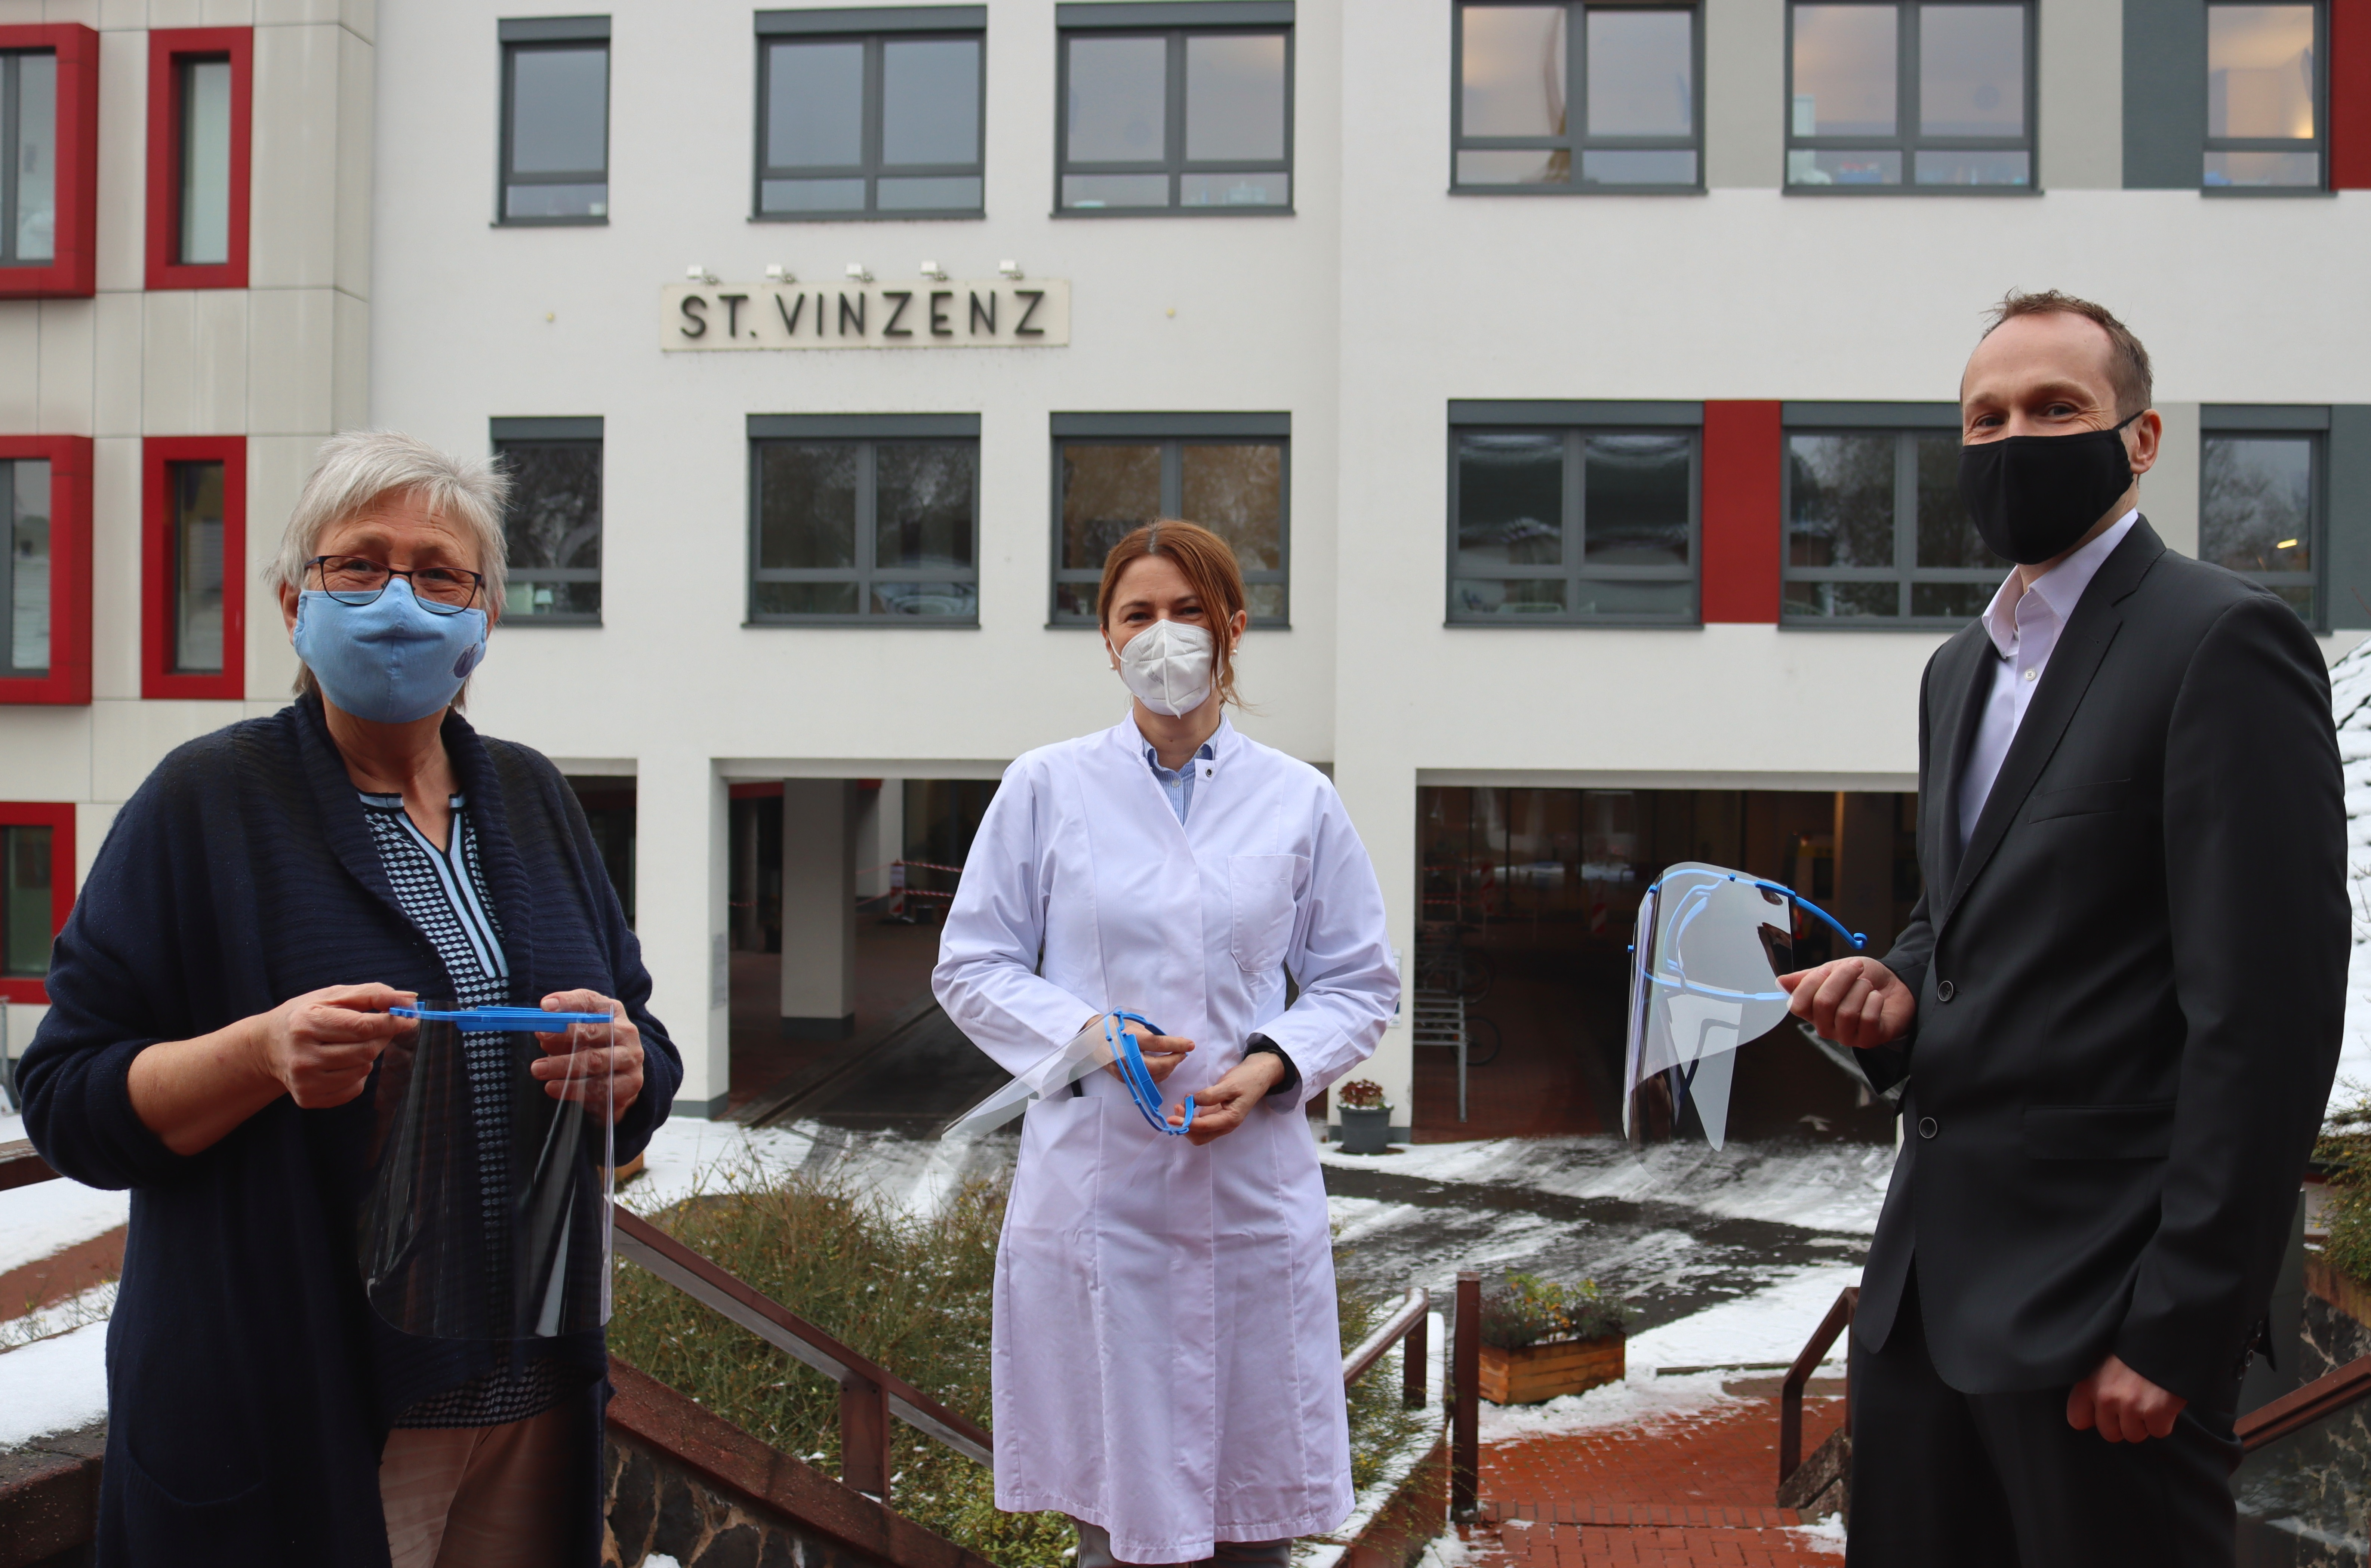 NORMA Group donated 500 face to St. Vinzenz Hospital in Hanau